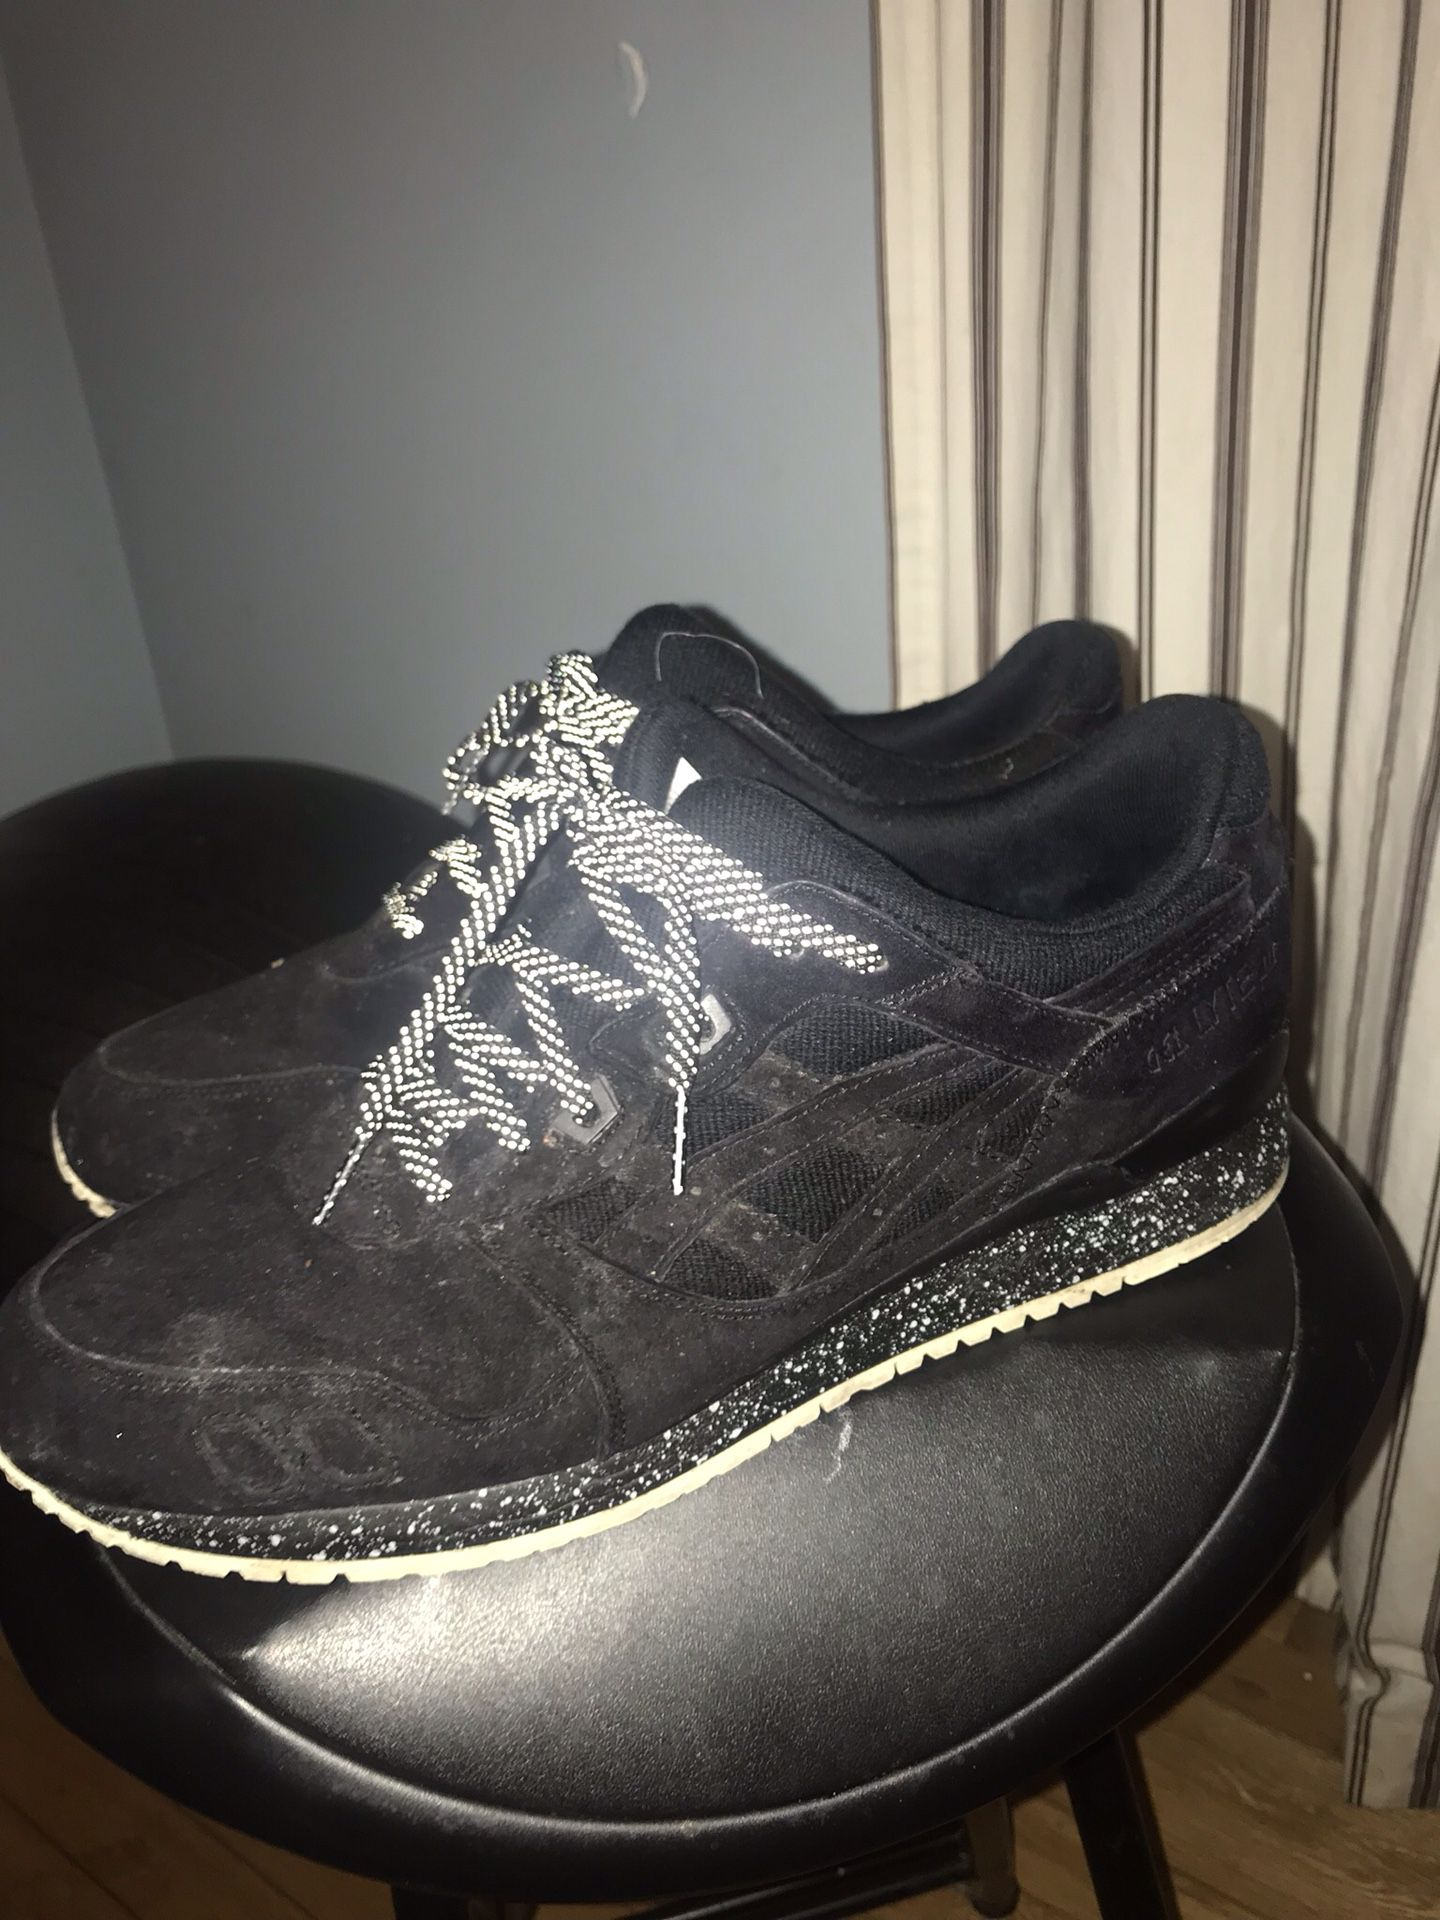 ASICS X Reigning champ collab black size 12 used